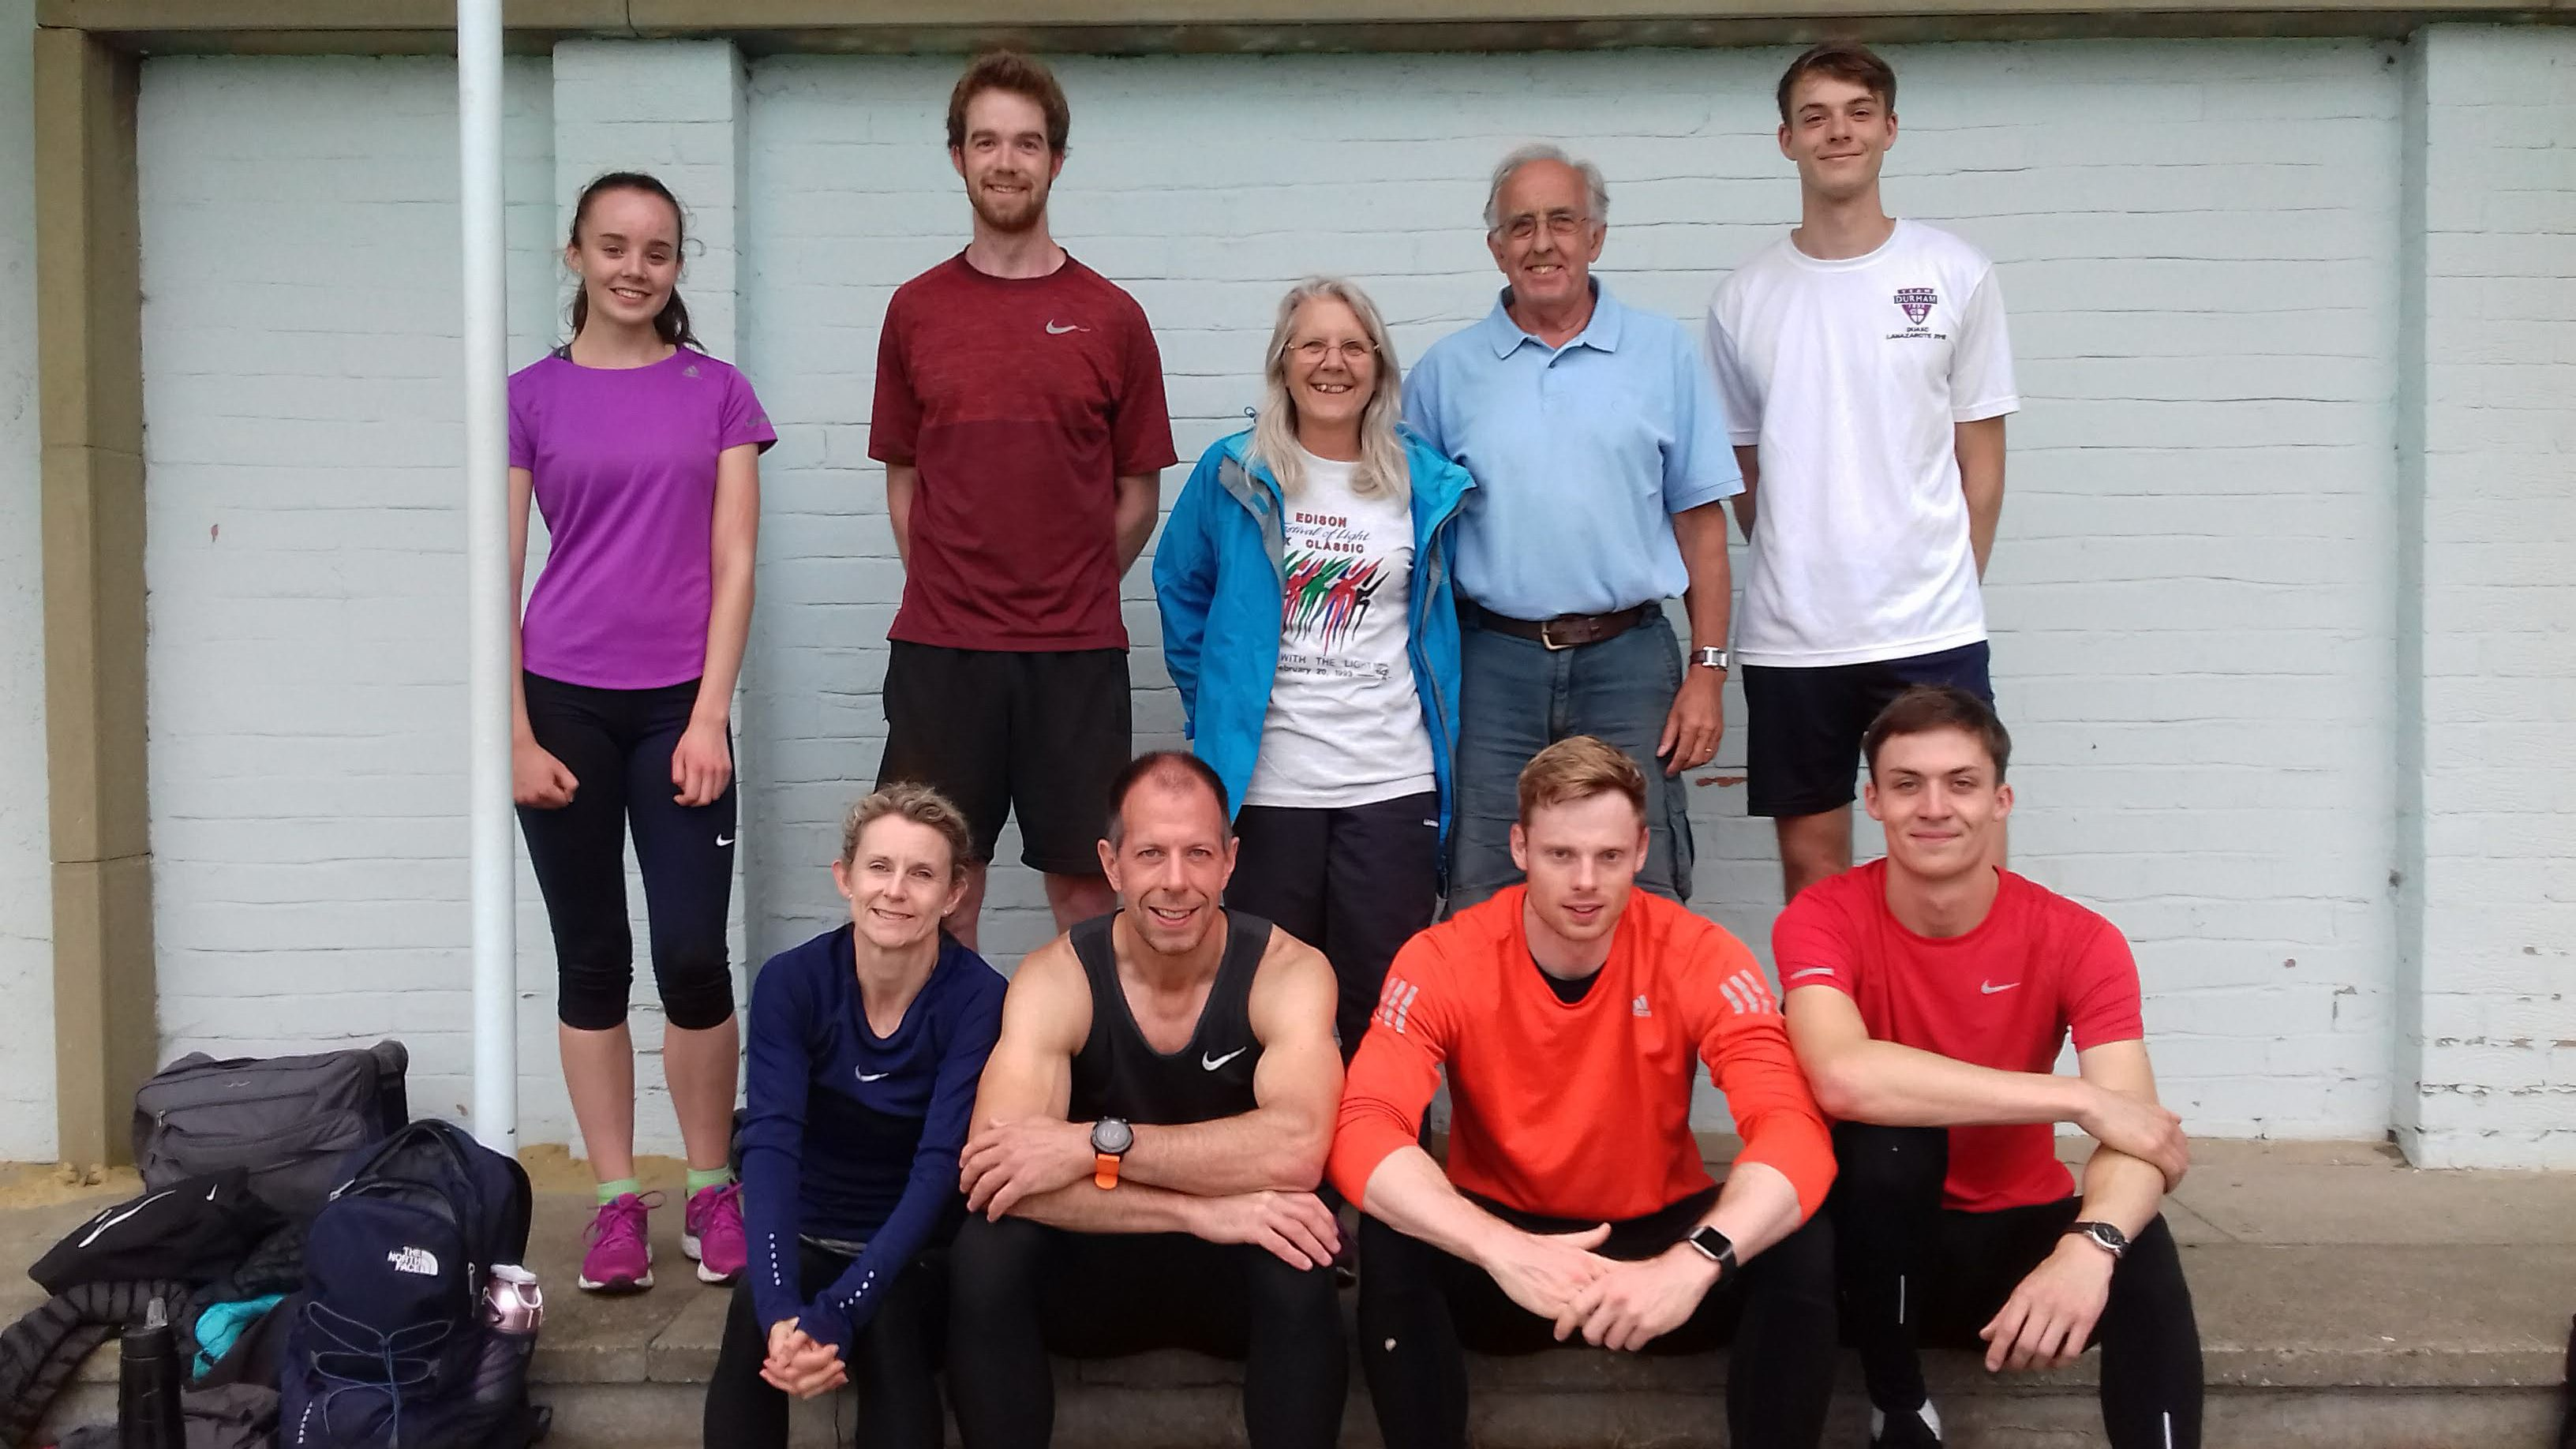 Long sprint running team of the Durham City Harriers